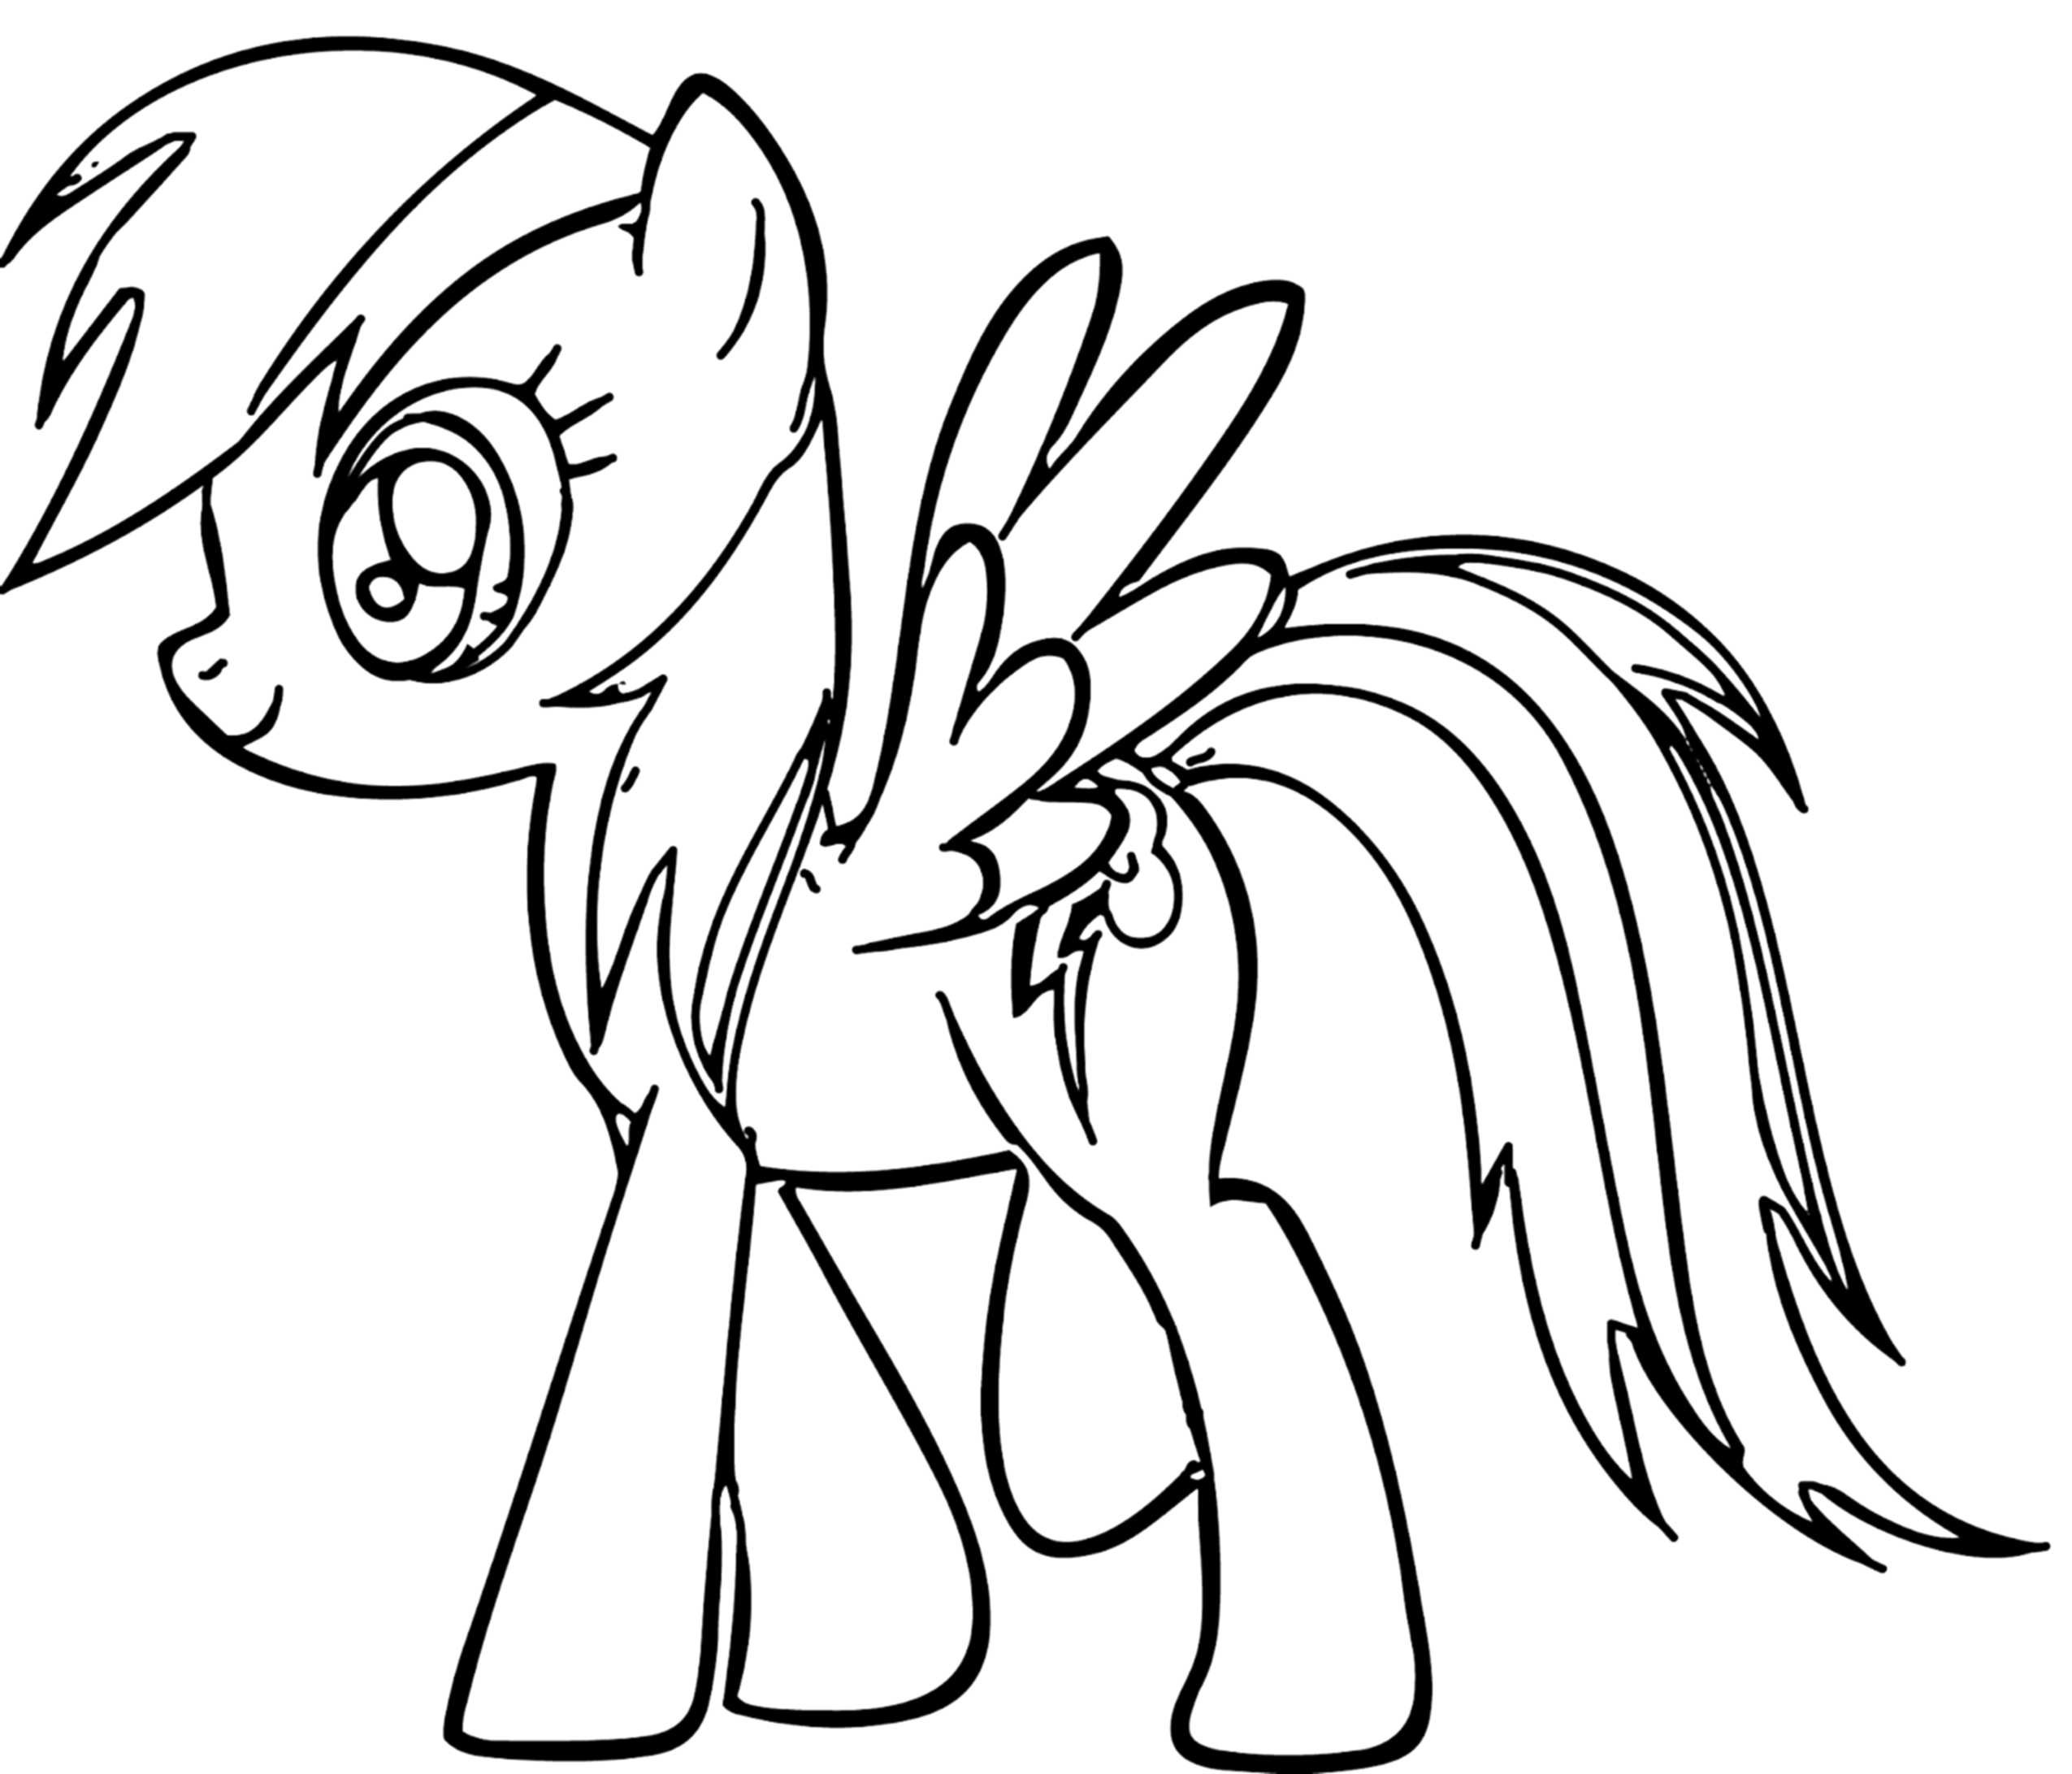 Coloring Pages Kids  Rainbow Dash Coloring Pages Best Coloring Pages For Kids